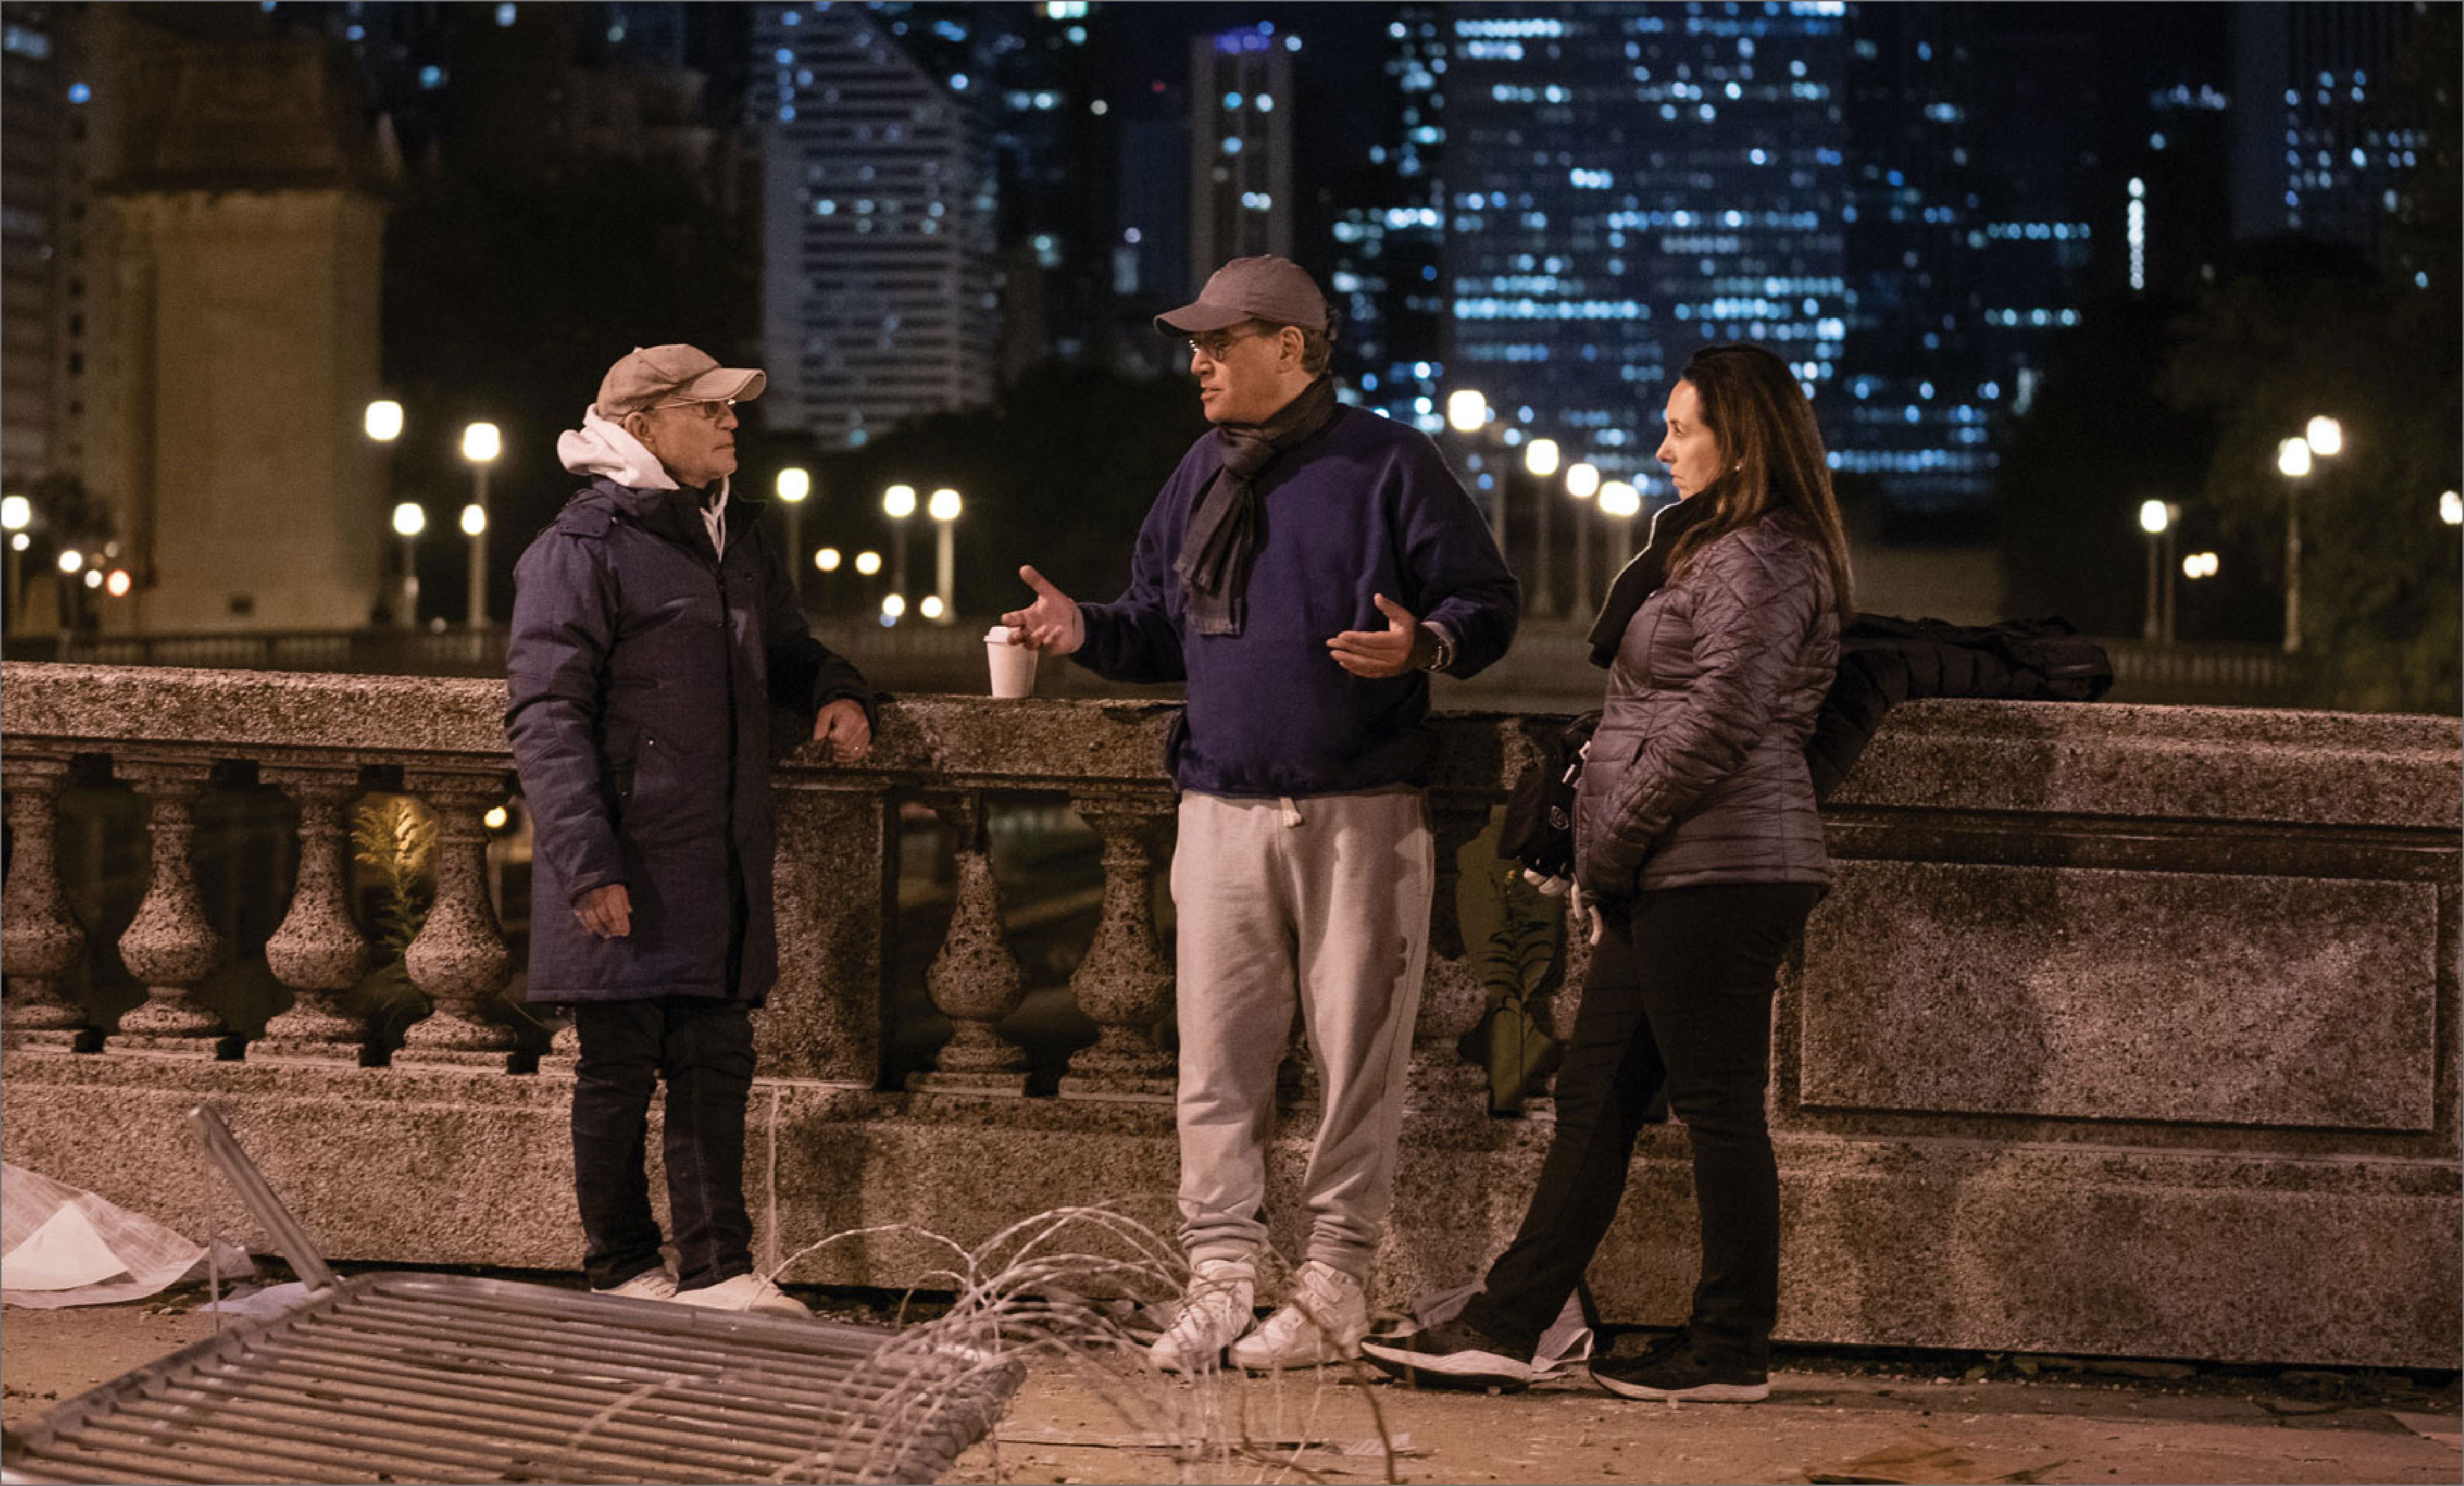 Sorkin stands on a bridge with a crew member on either side of him. Chicago highrises are illuminated in the background.